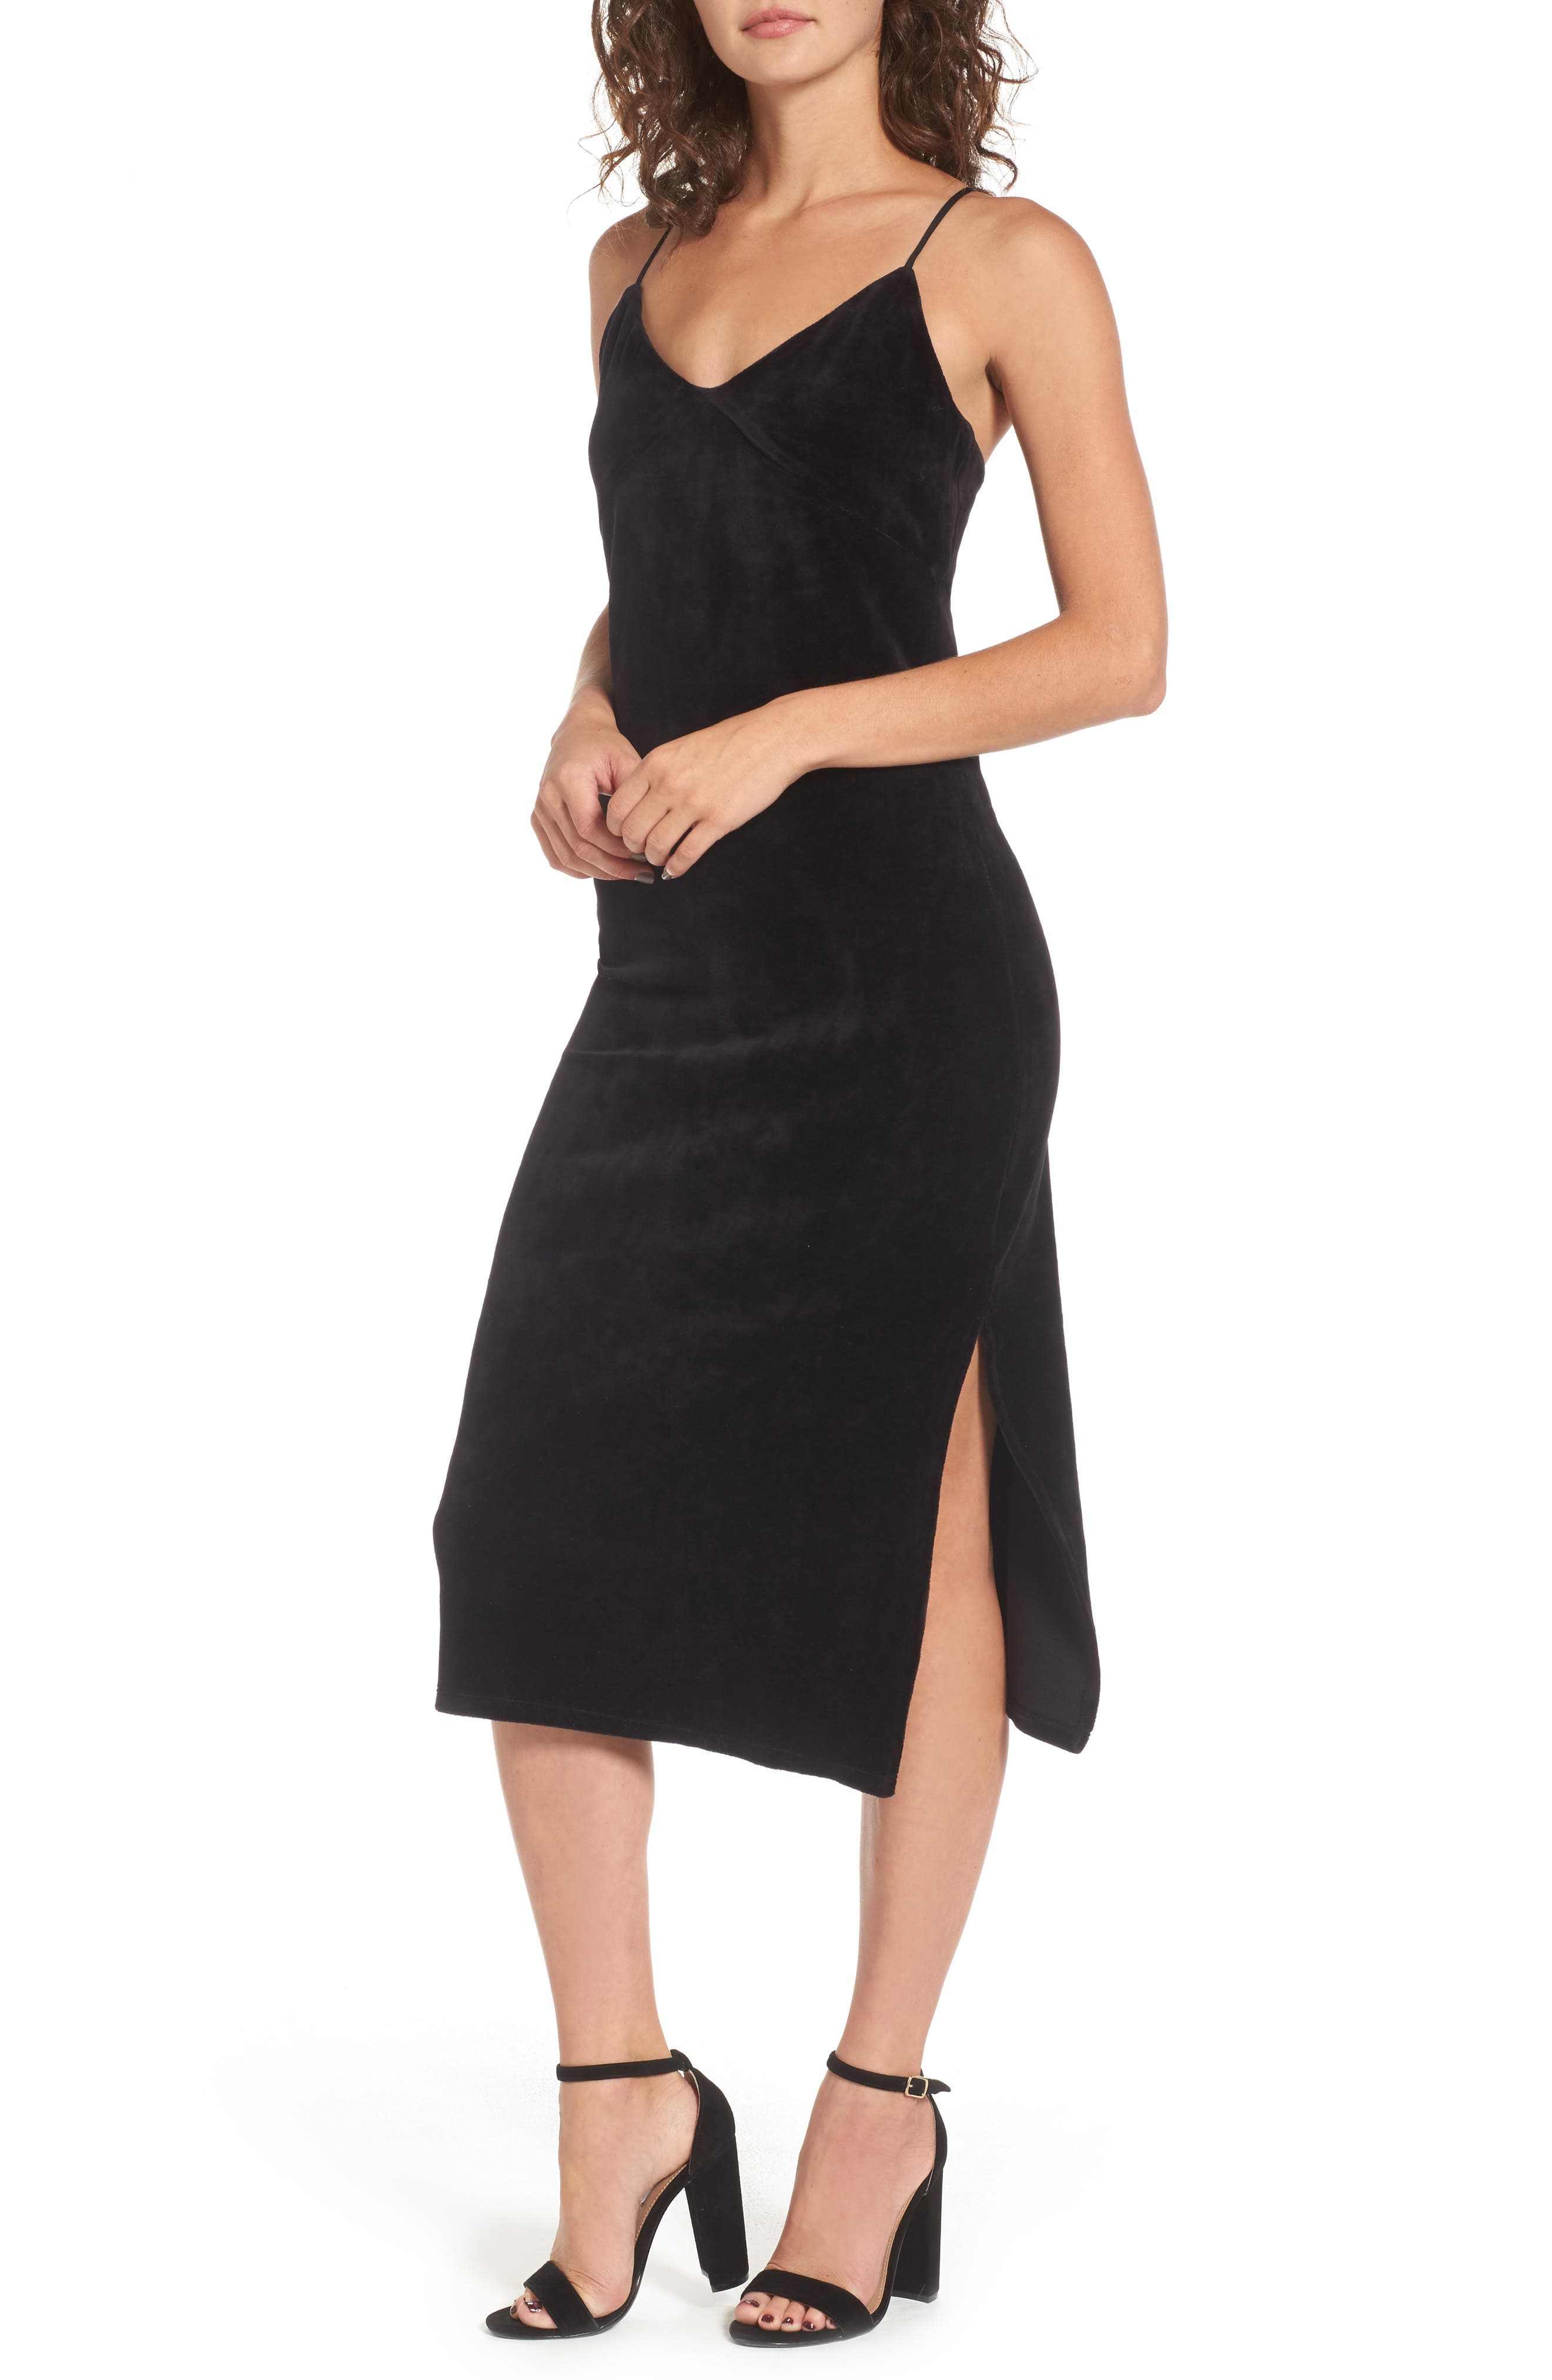 Juicy Couture Stretch Velour Slipdress